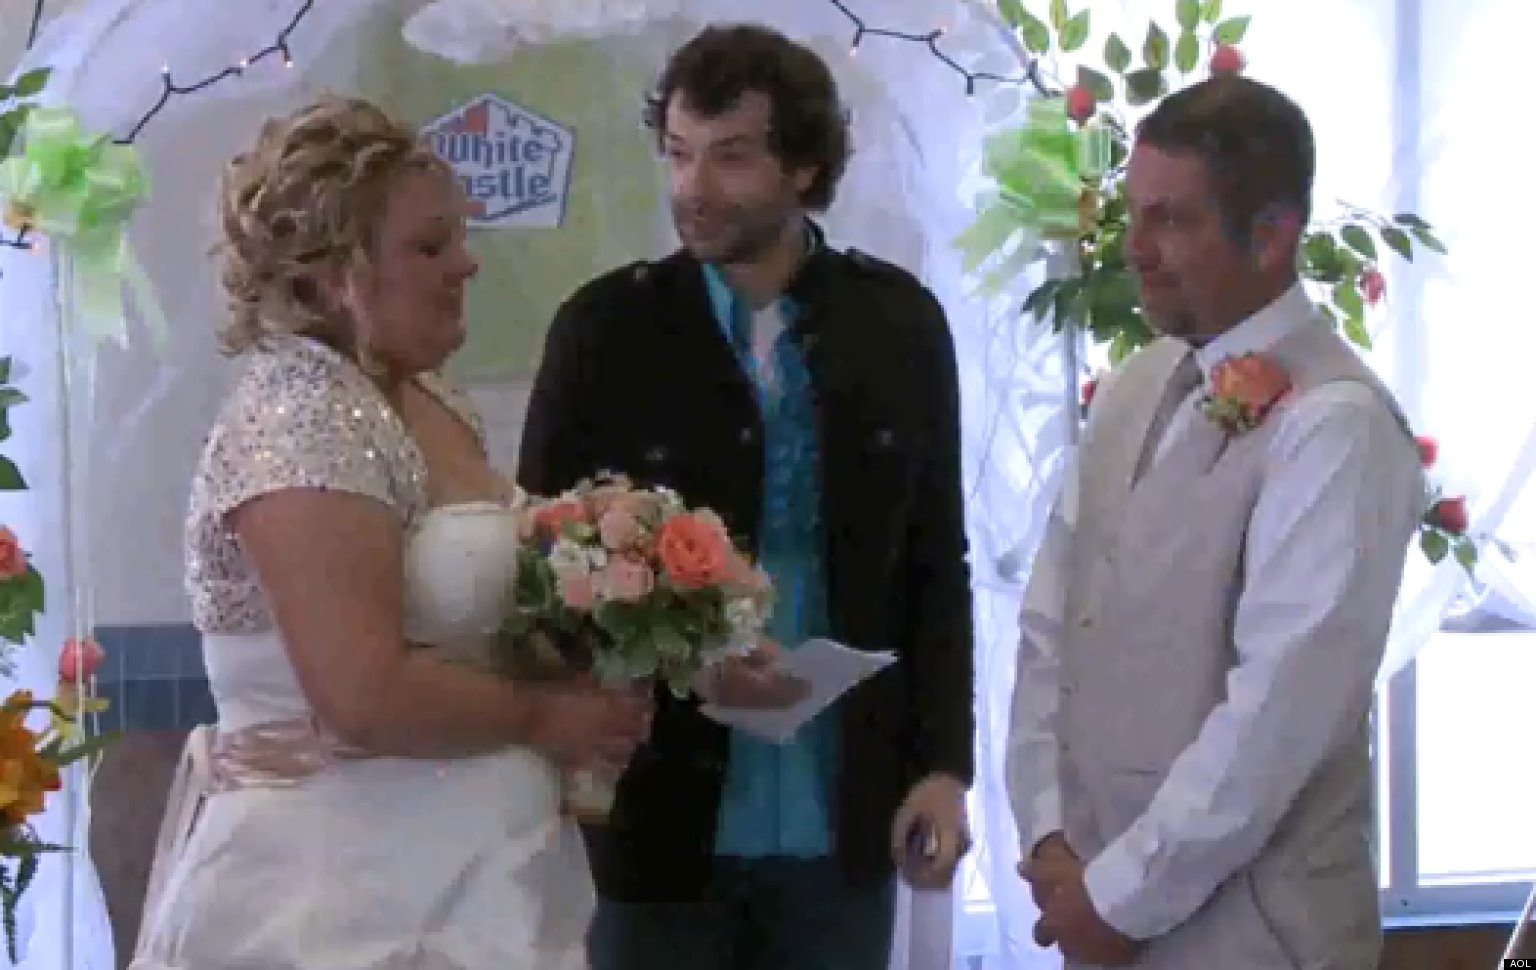 white castle wedding: couple ties the knot inside burger joint